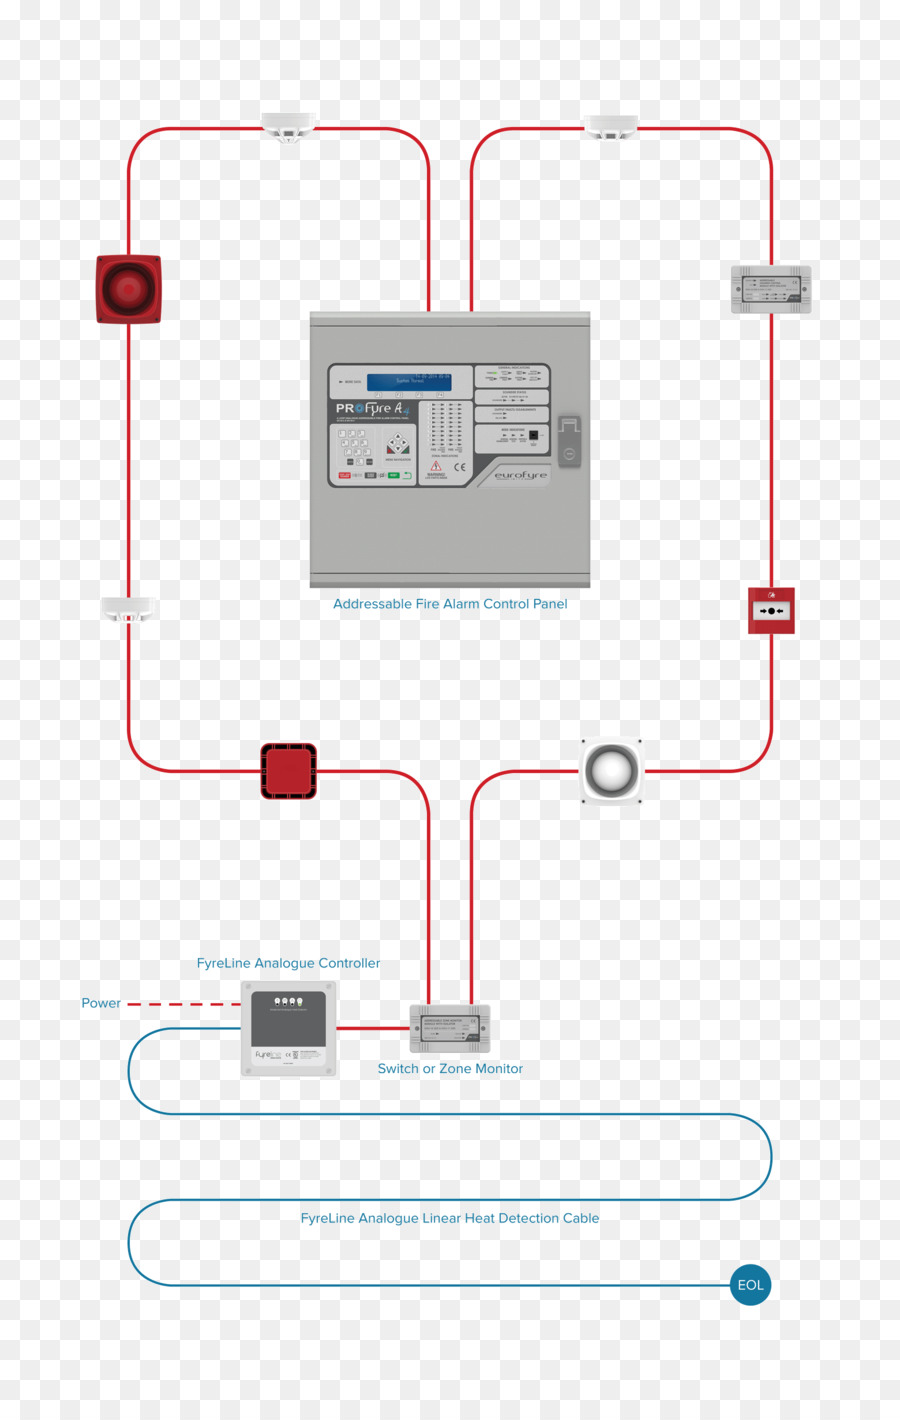 Fire Alarm Control Panel Fire Alarm System Heat Detector Security - Alarm system wiring diagram